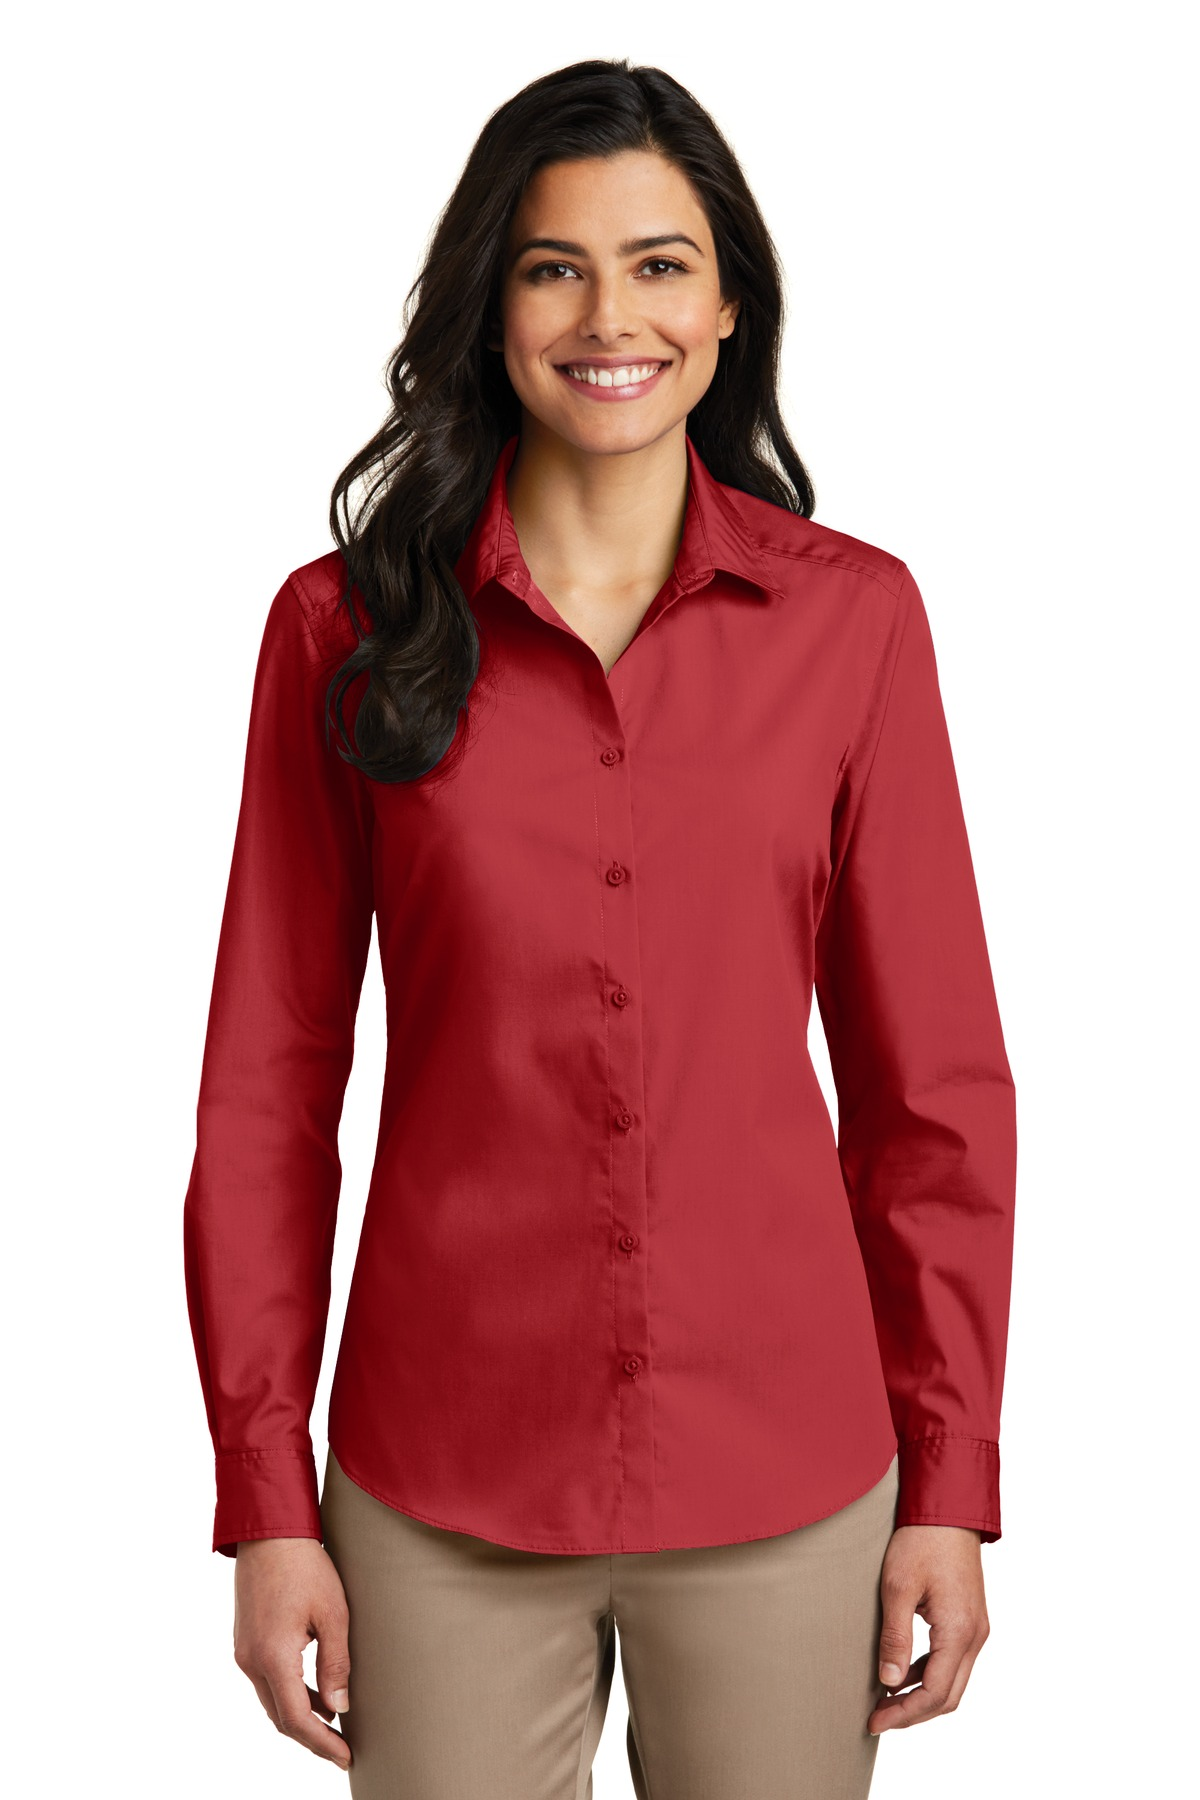 Port Authority ®  Ladies Long Sleeve Carefree Poplin Shirt. LW100 - Rich Red